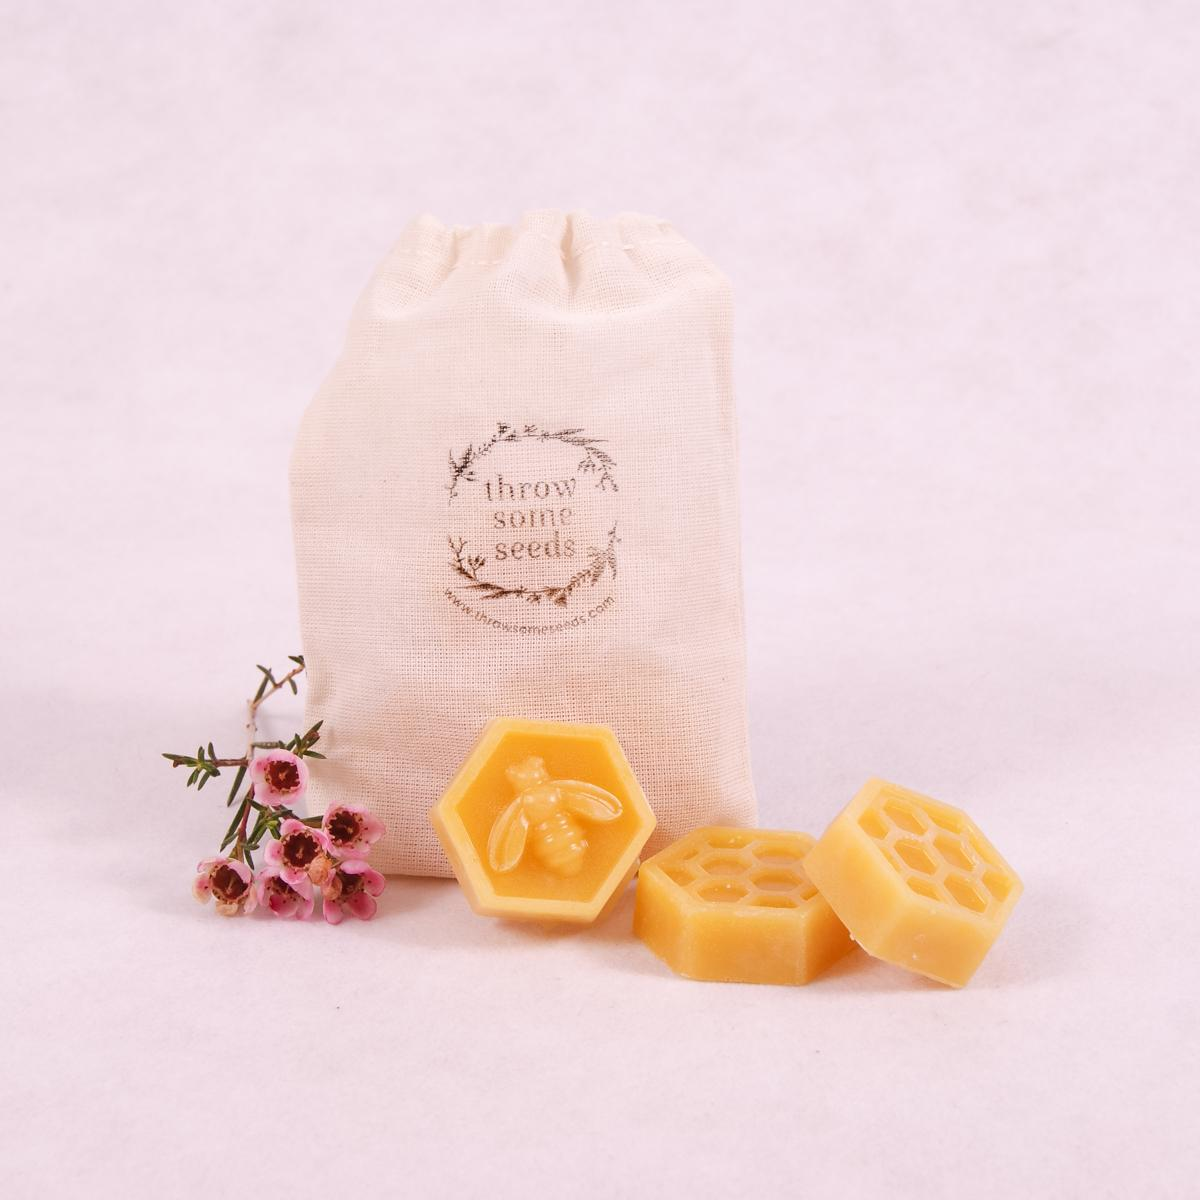 Beeswax Melts - 3 pack - Beeswax Melt - Throw Some Seeds - Australian gardening gifts and eco products online!